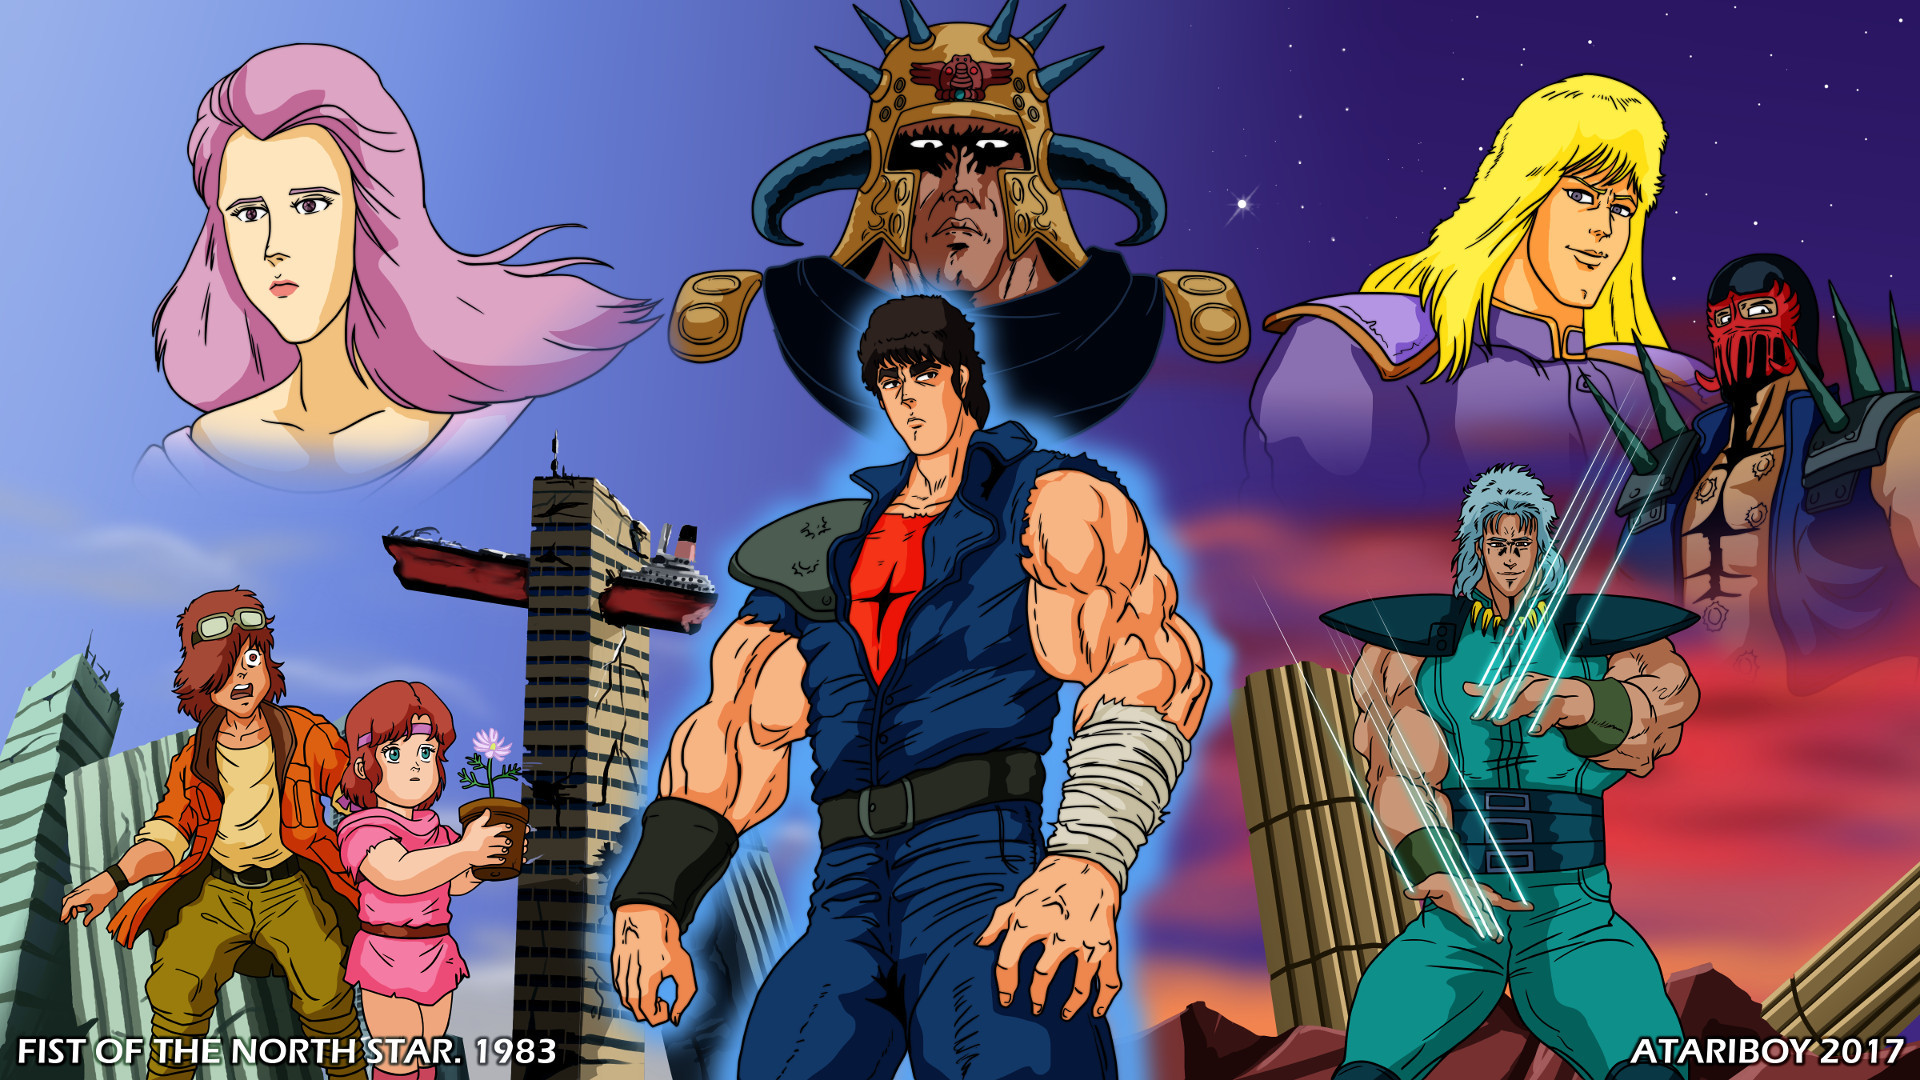 All fist of the north star